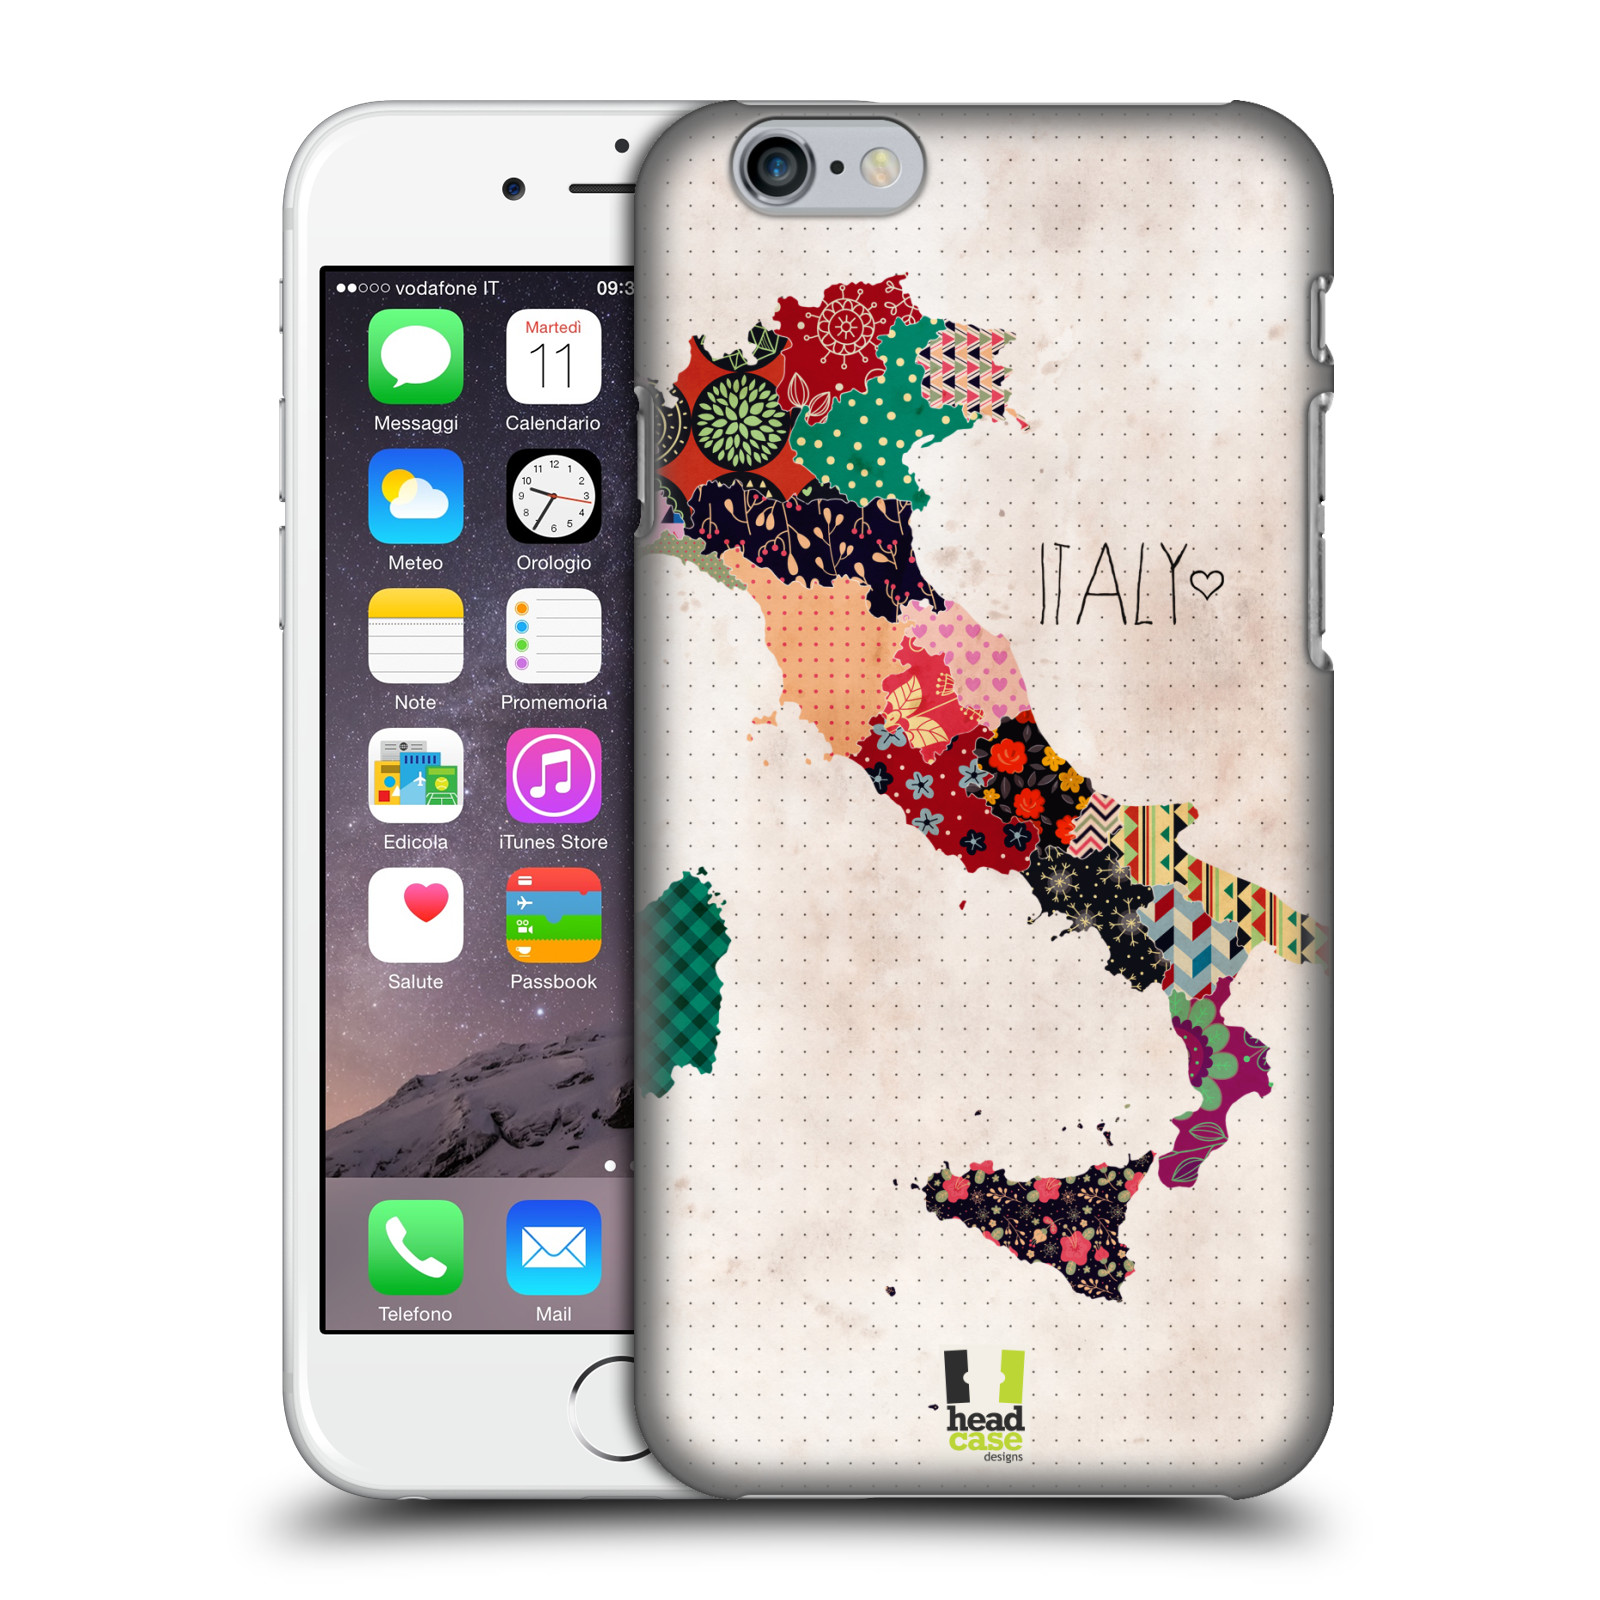 HEAD-CASE-DESIGNS-MAPPE-CON-PATTERN-COVER-RETRO-RIGIDA-PER-APPLE-iPHONE-TELEFONI